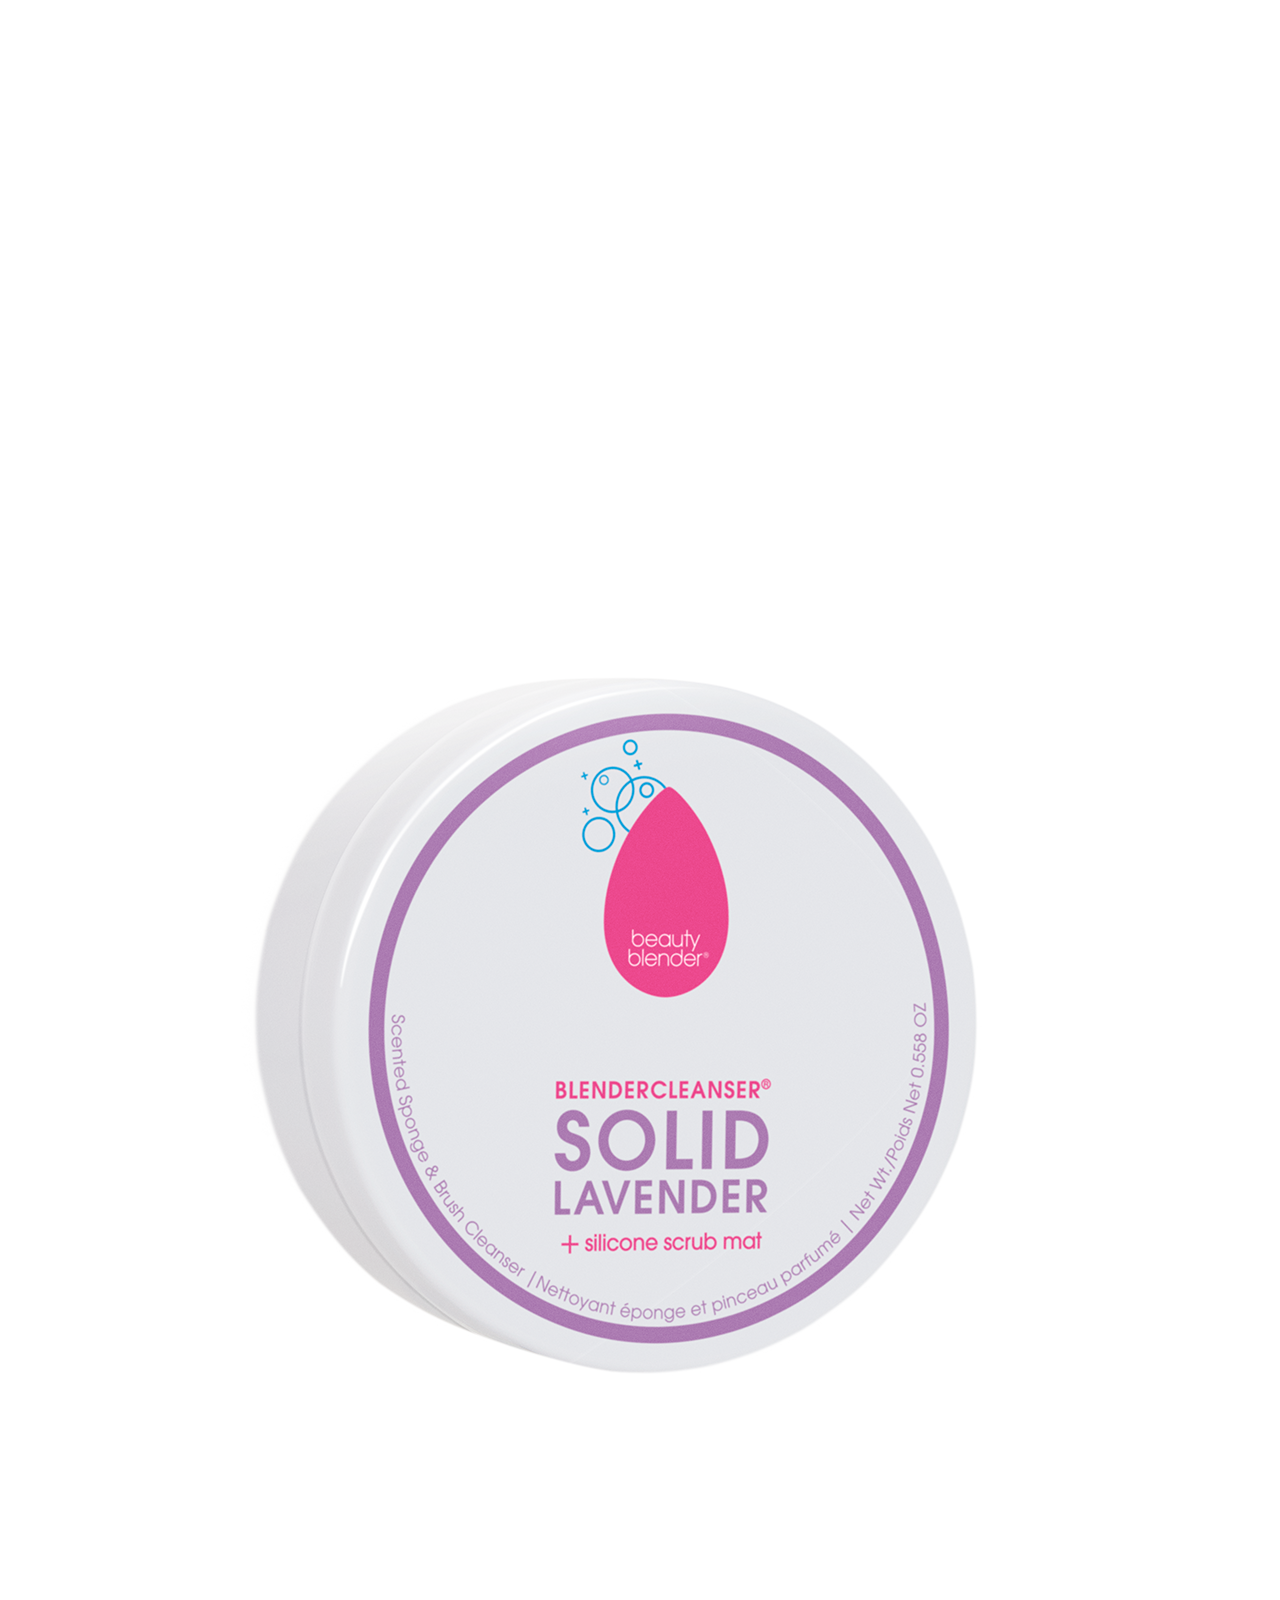 BLENDERCLEANSER® SOLID®  LAVENDER Scented Sponge & Brush Cleanser .558oz